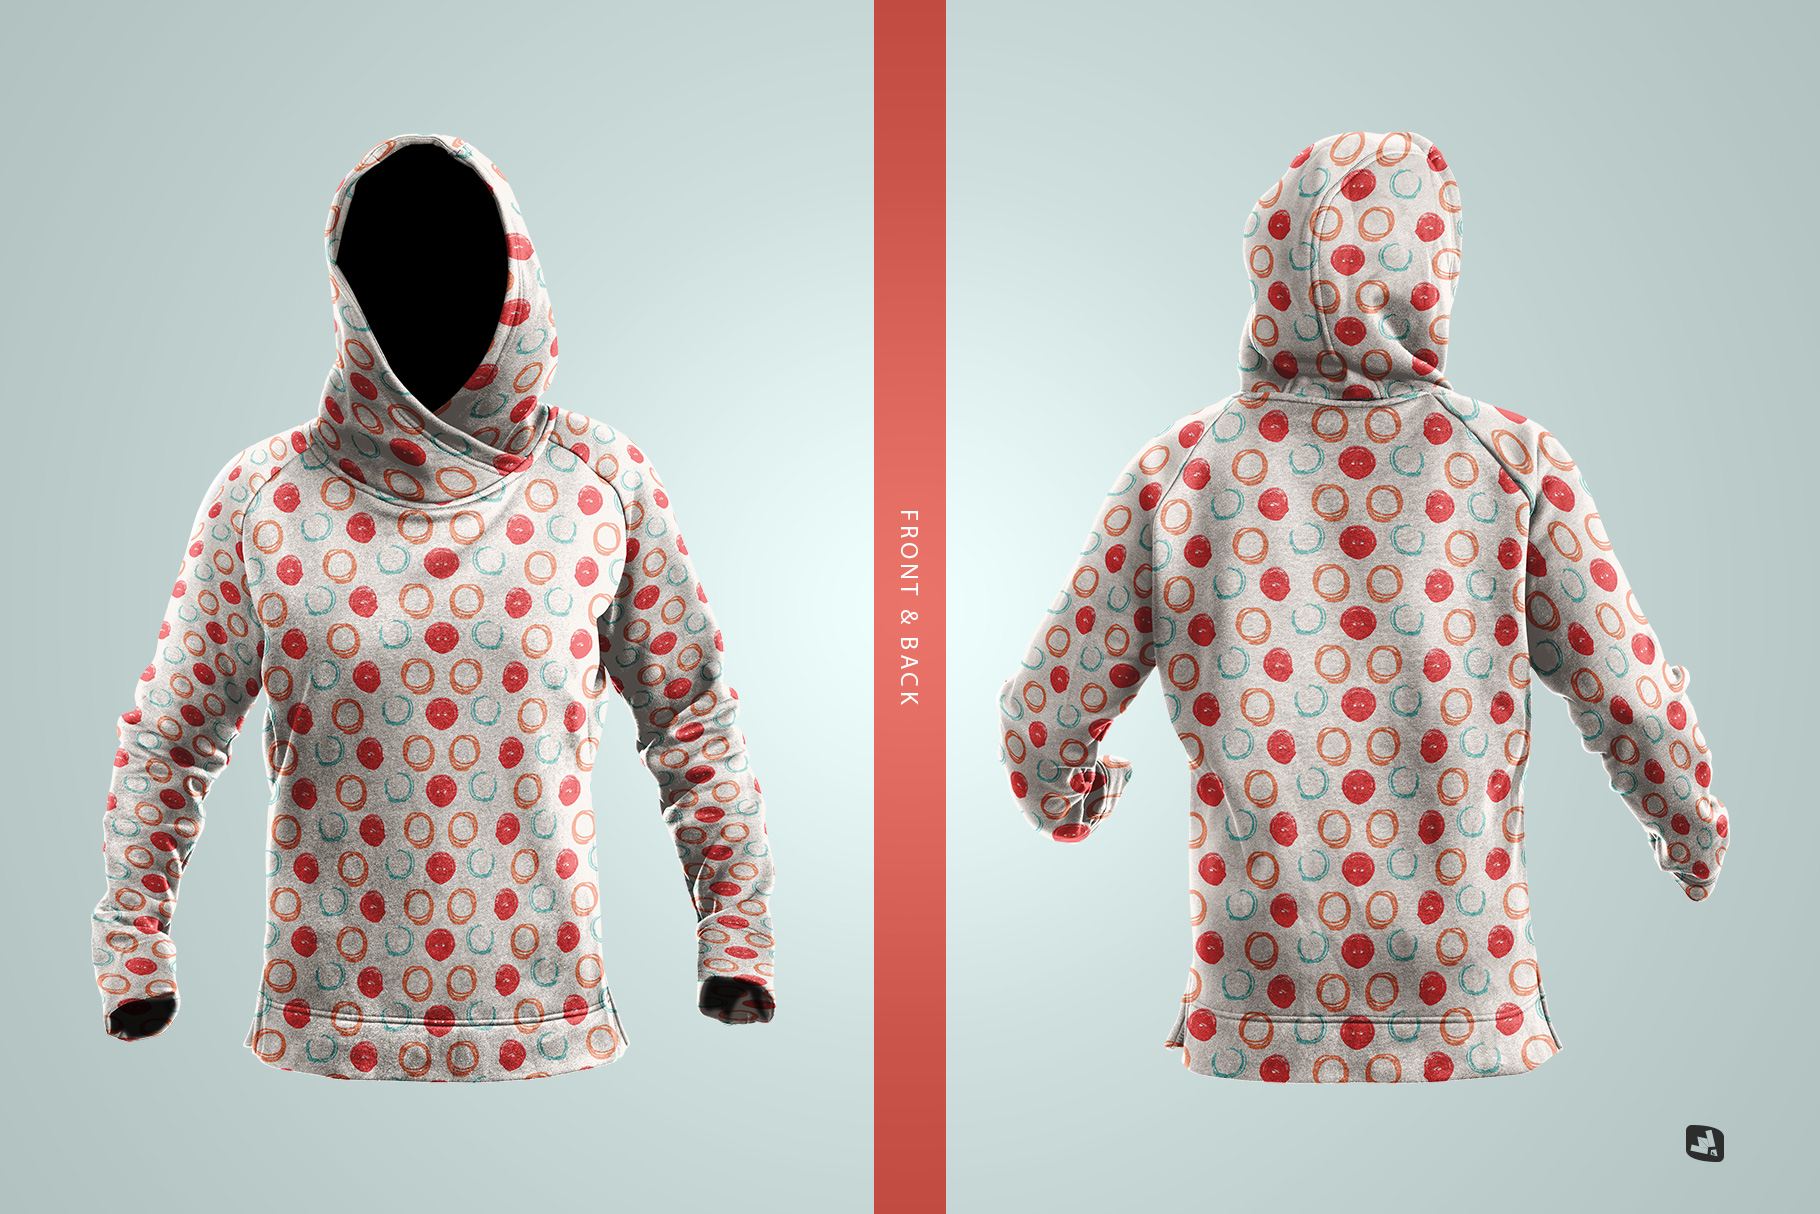 inside the files of the female wrapped hoodie set mockup